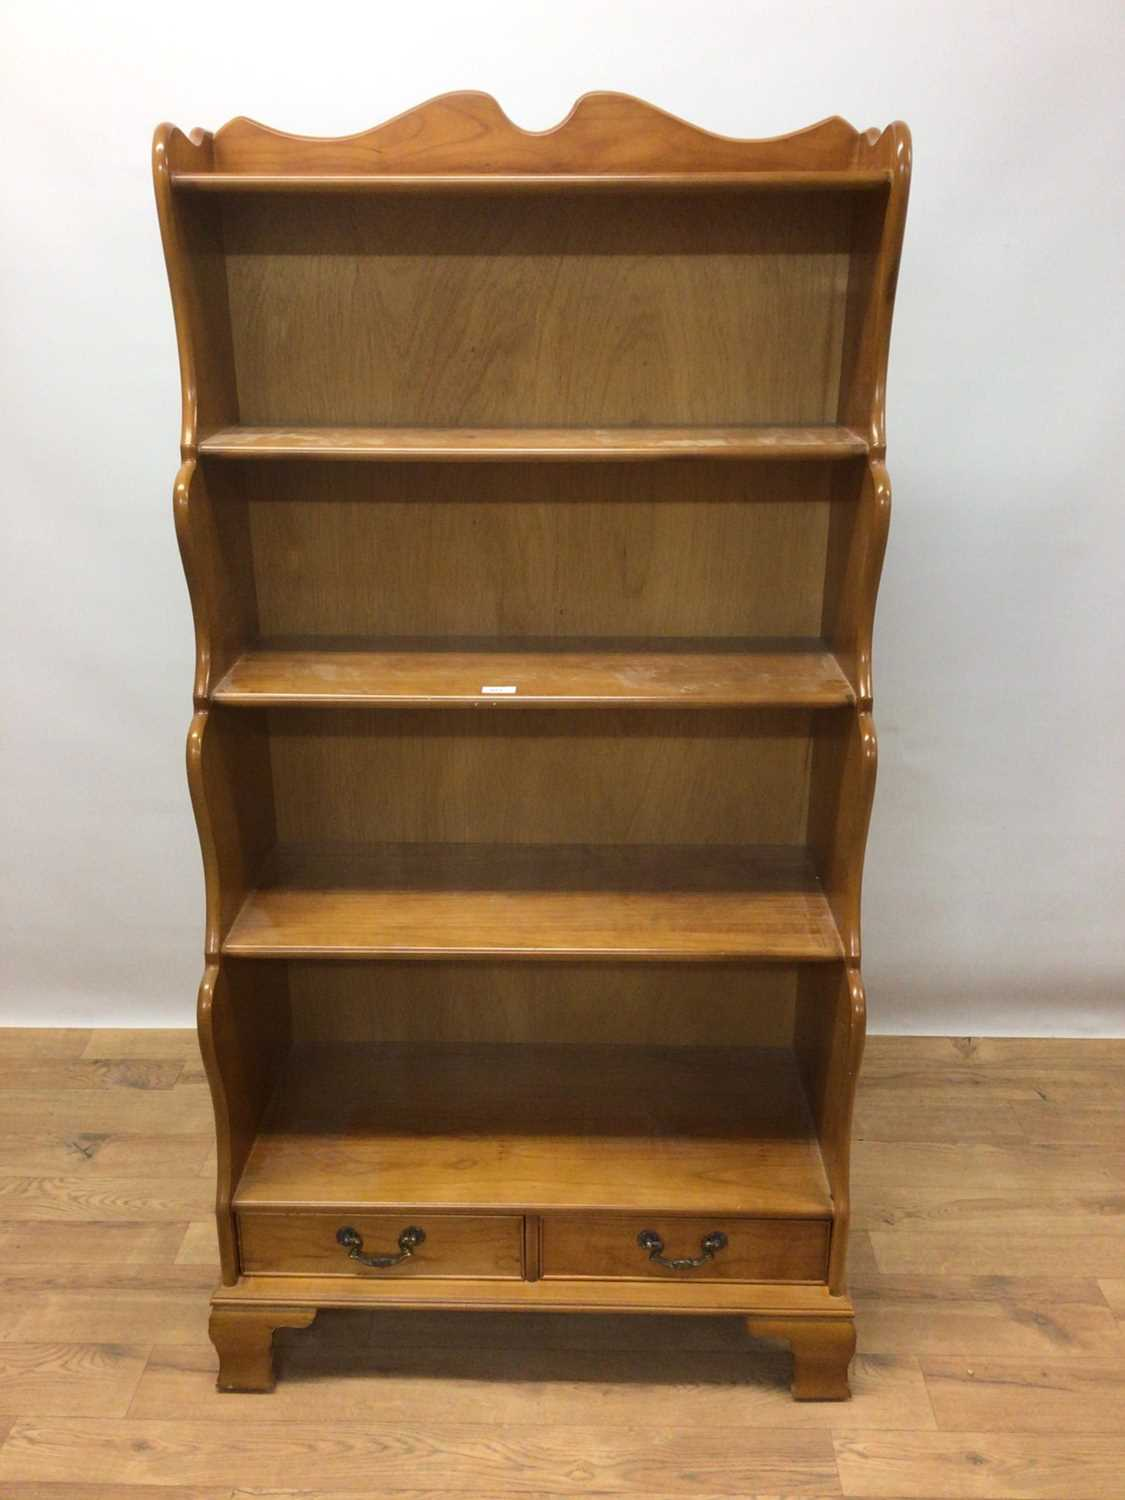 Lot 95 - Pine waterfall bookcase with open shelves and two drawers below, 78cm wide, 38cm deep, 150cm high